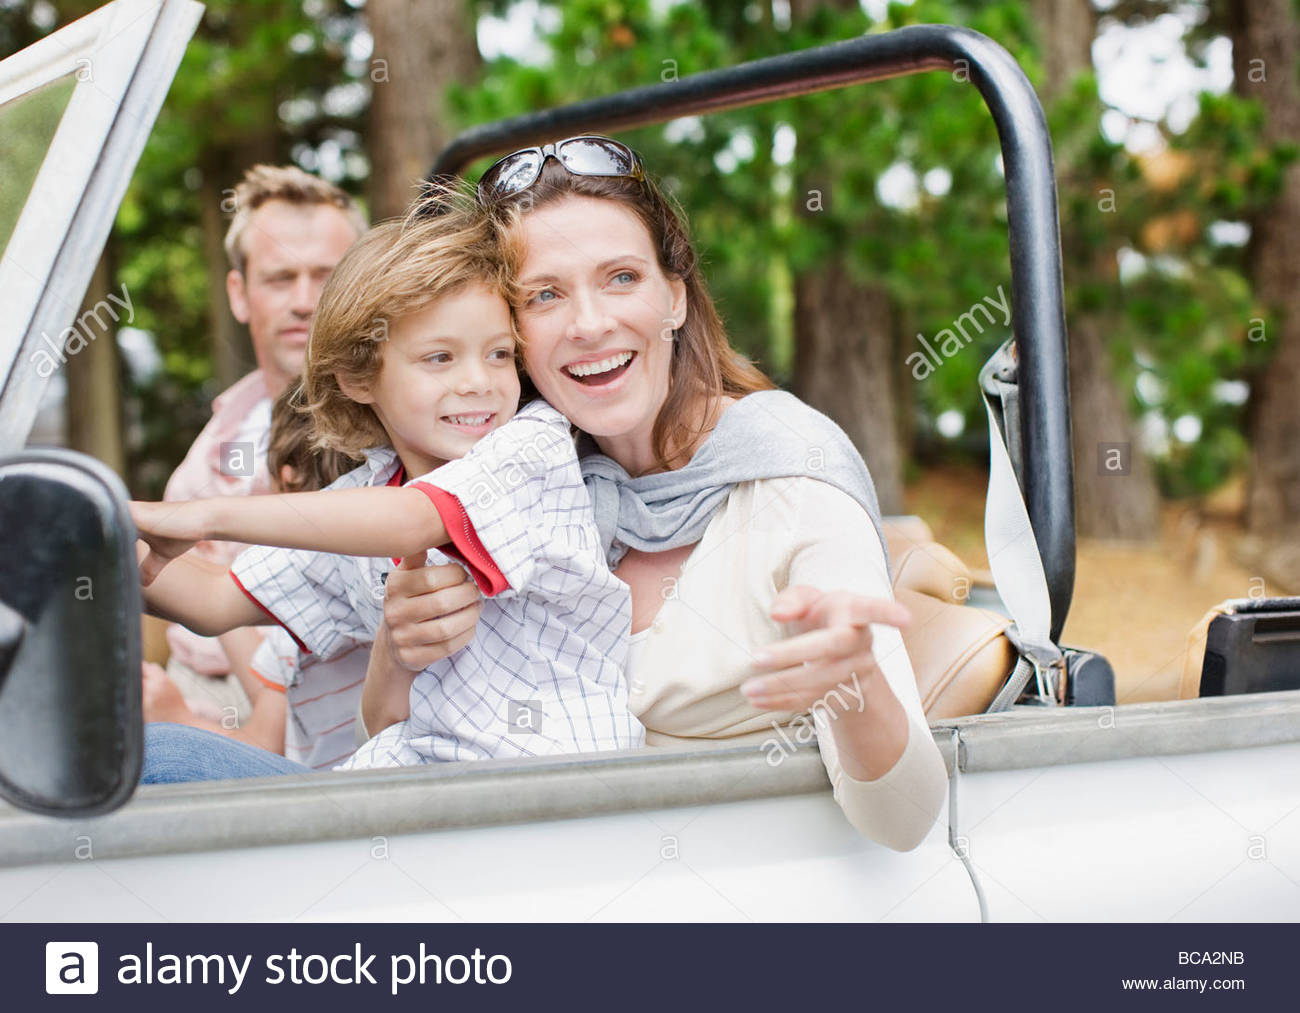 Father, mother and son riding in jeep - Stock Image